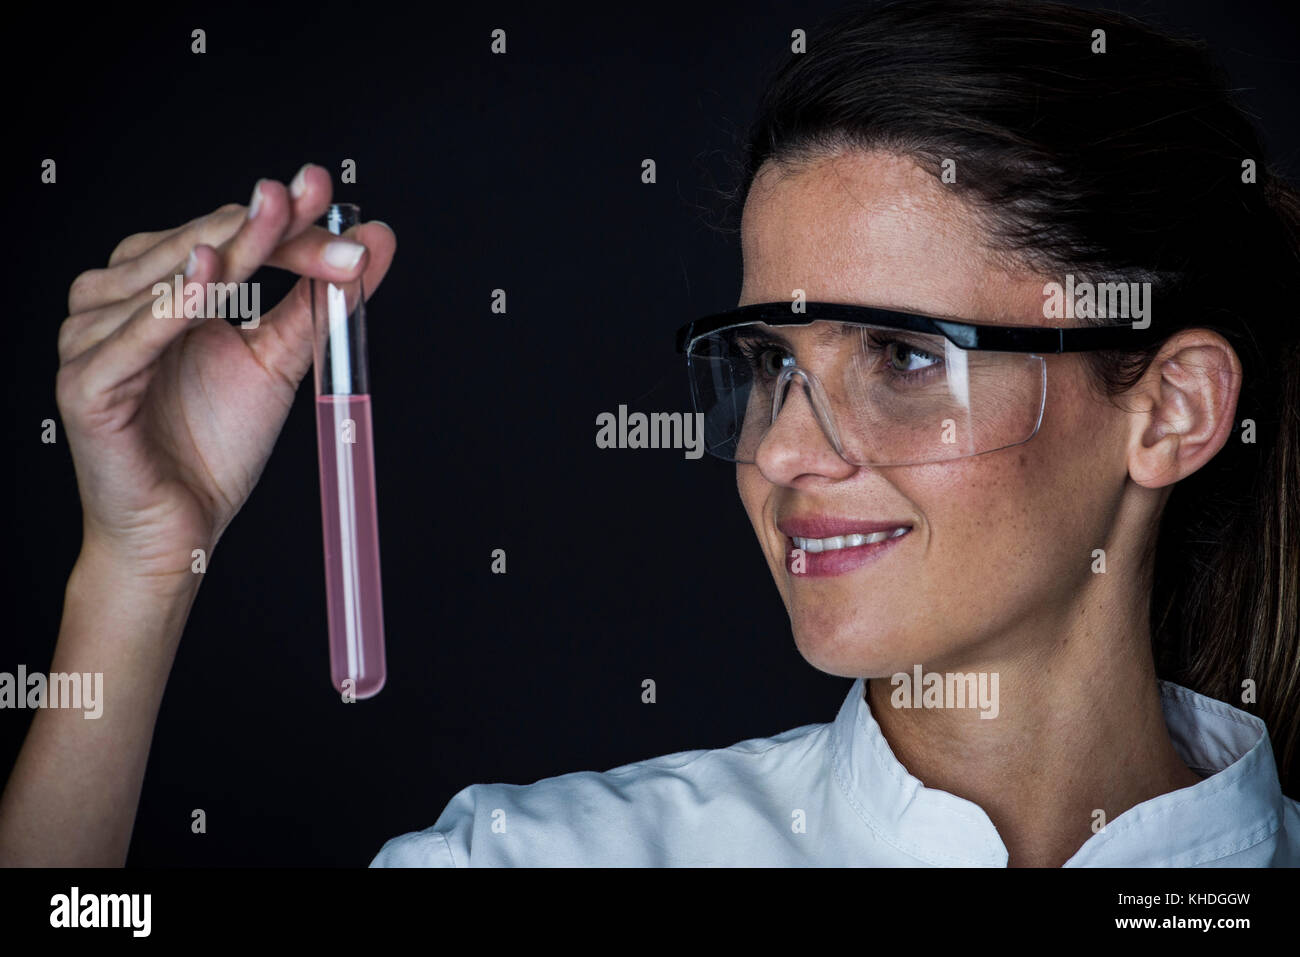 Young woman looking at liquid in test tube Stock Photo